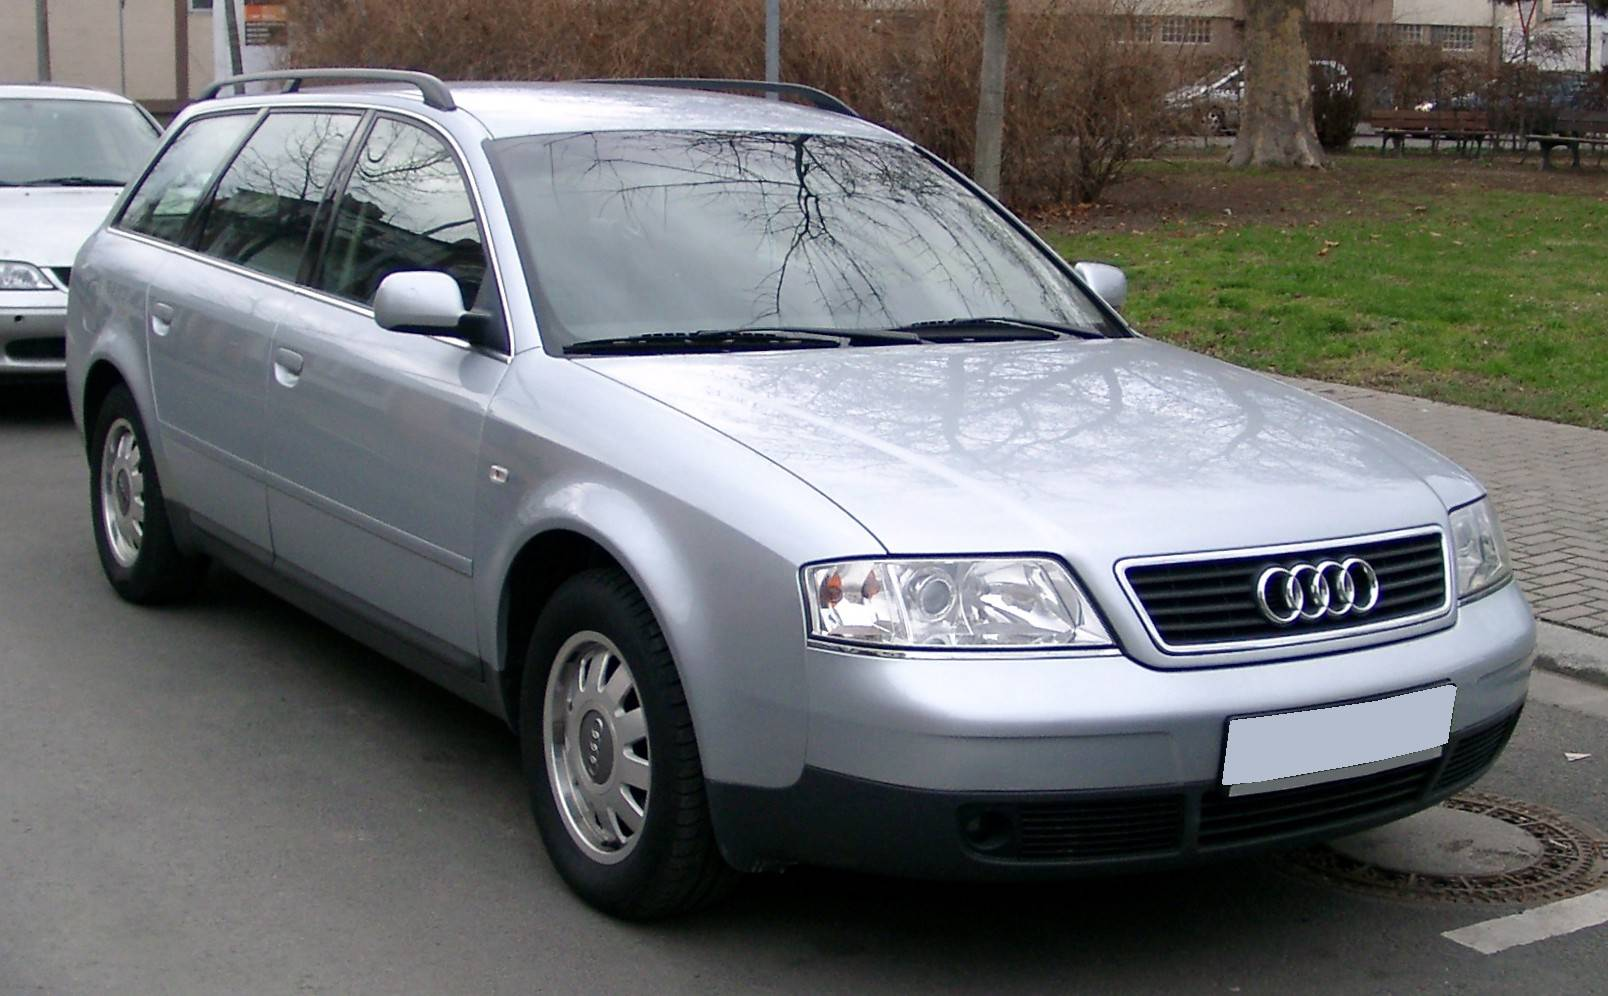 2001 audi a6 2 8 avant quattro wagon v6 awd auto. Black Bedroom Furniture Sets. Home Design Ideas